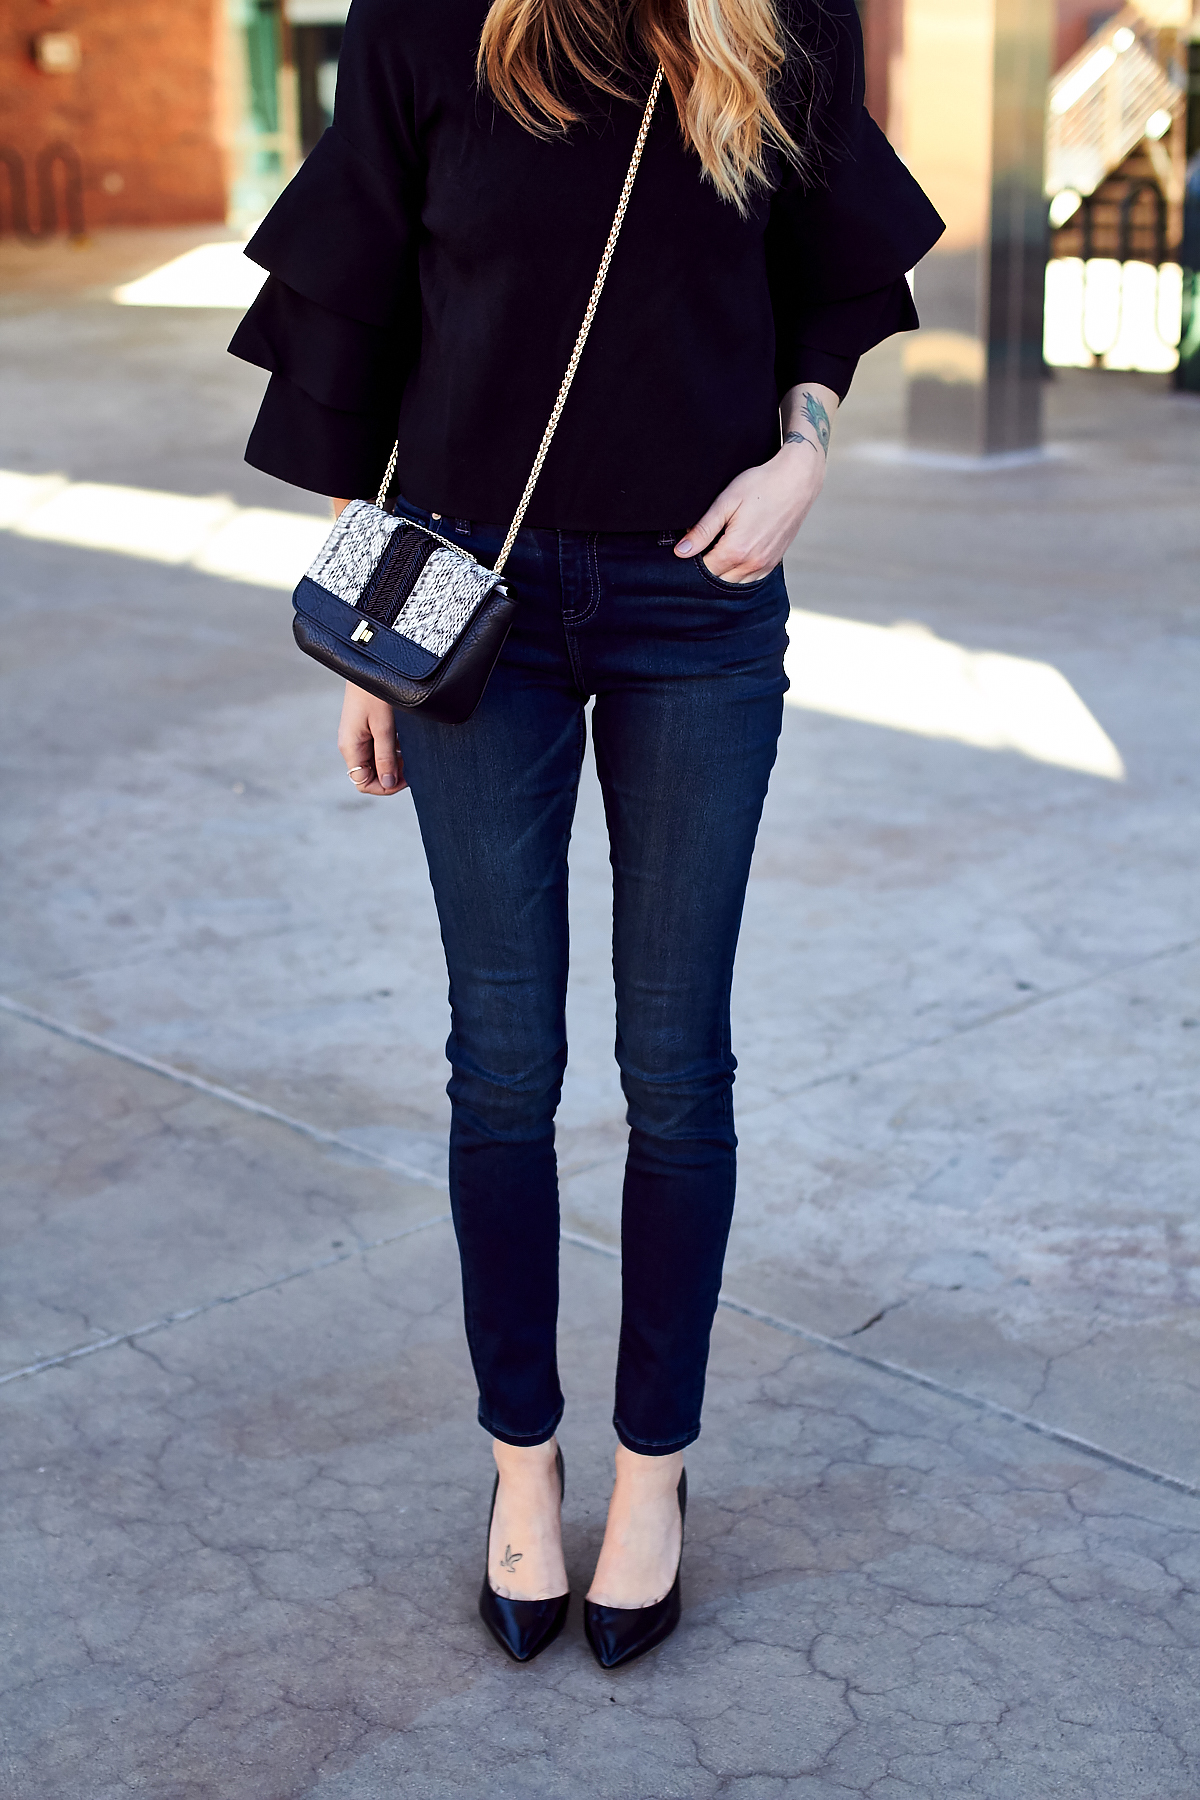 New Year's Eve Outfit, Embellished Handbag, Black Pumps, Black Ruffle Sleeve Top, Denim Skinny Jeans